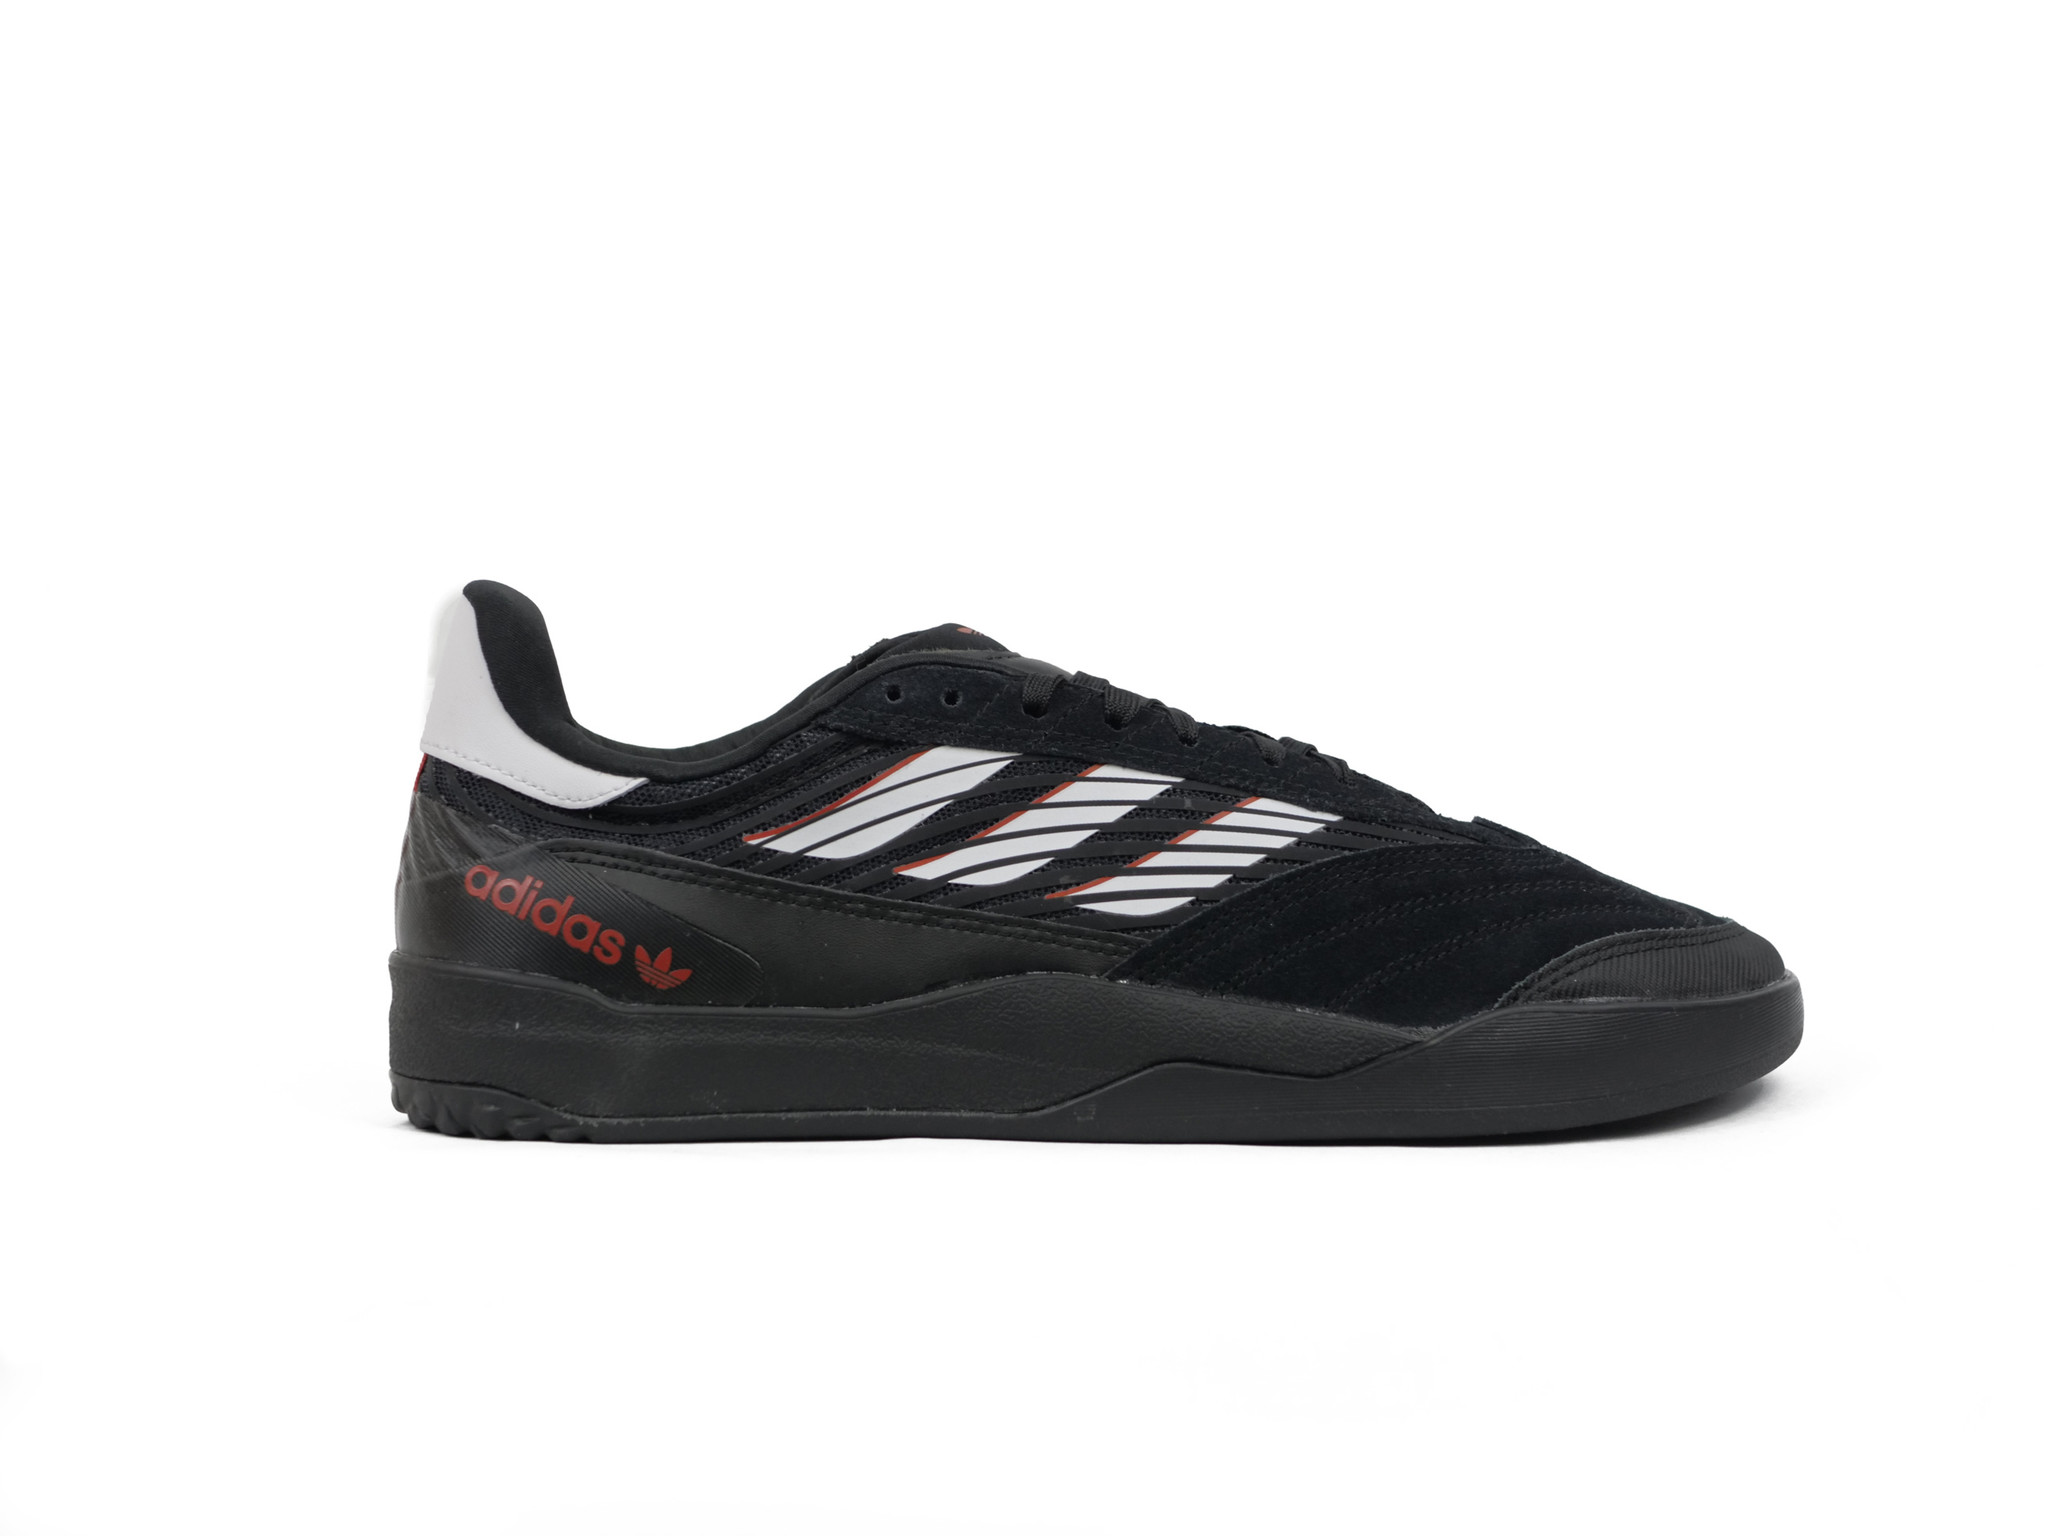 ADIDAS ADIDAS COPA NATIONALE CORE BLACK / WHITE / SCARLET